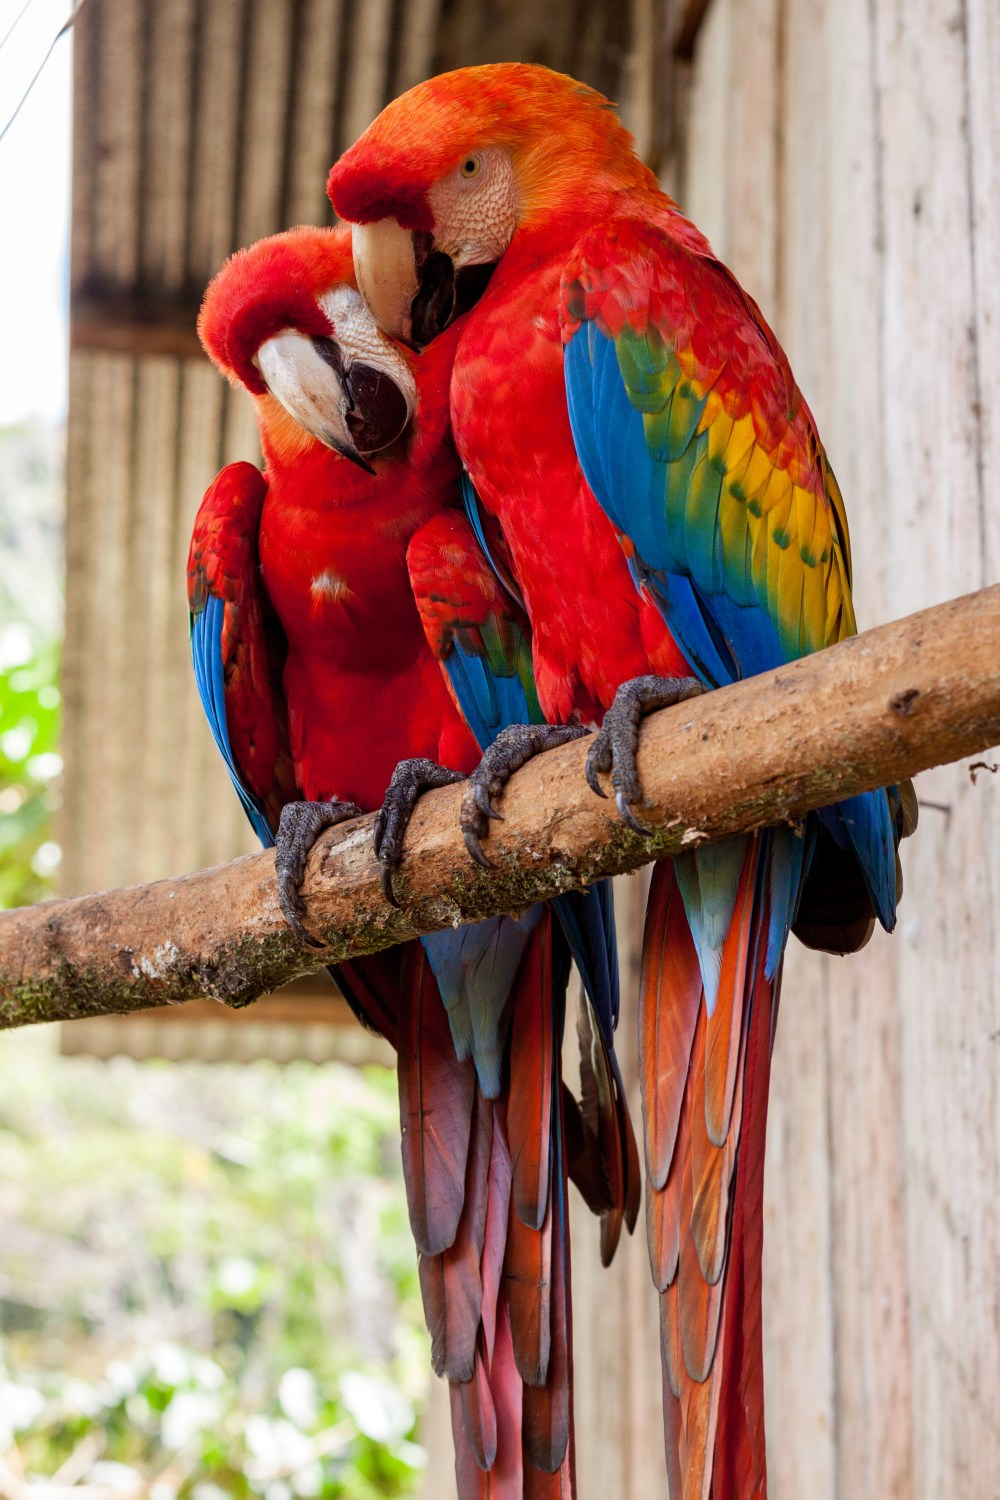 500 parrot pictures download